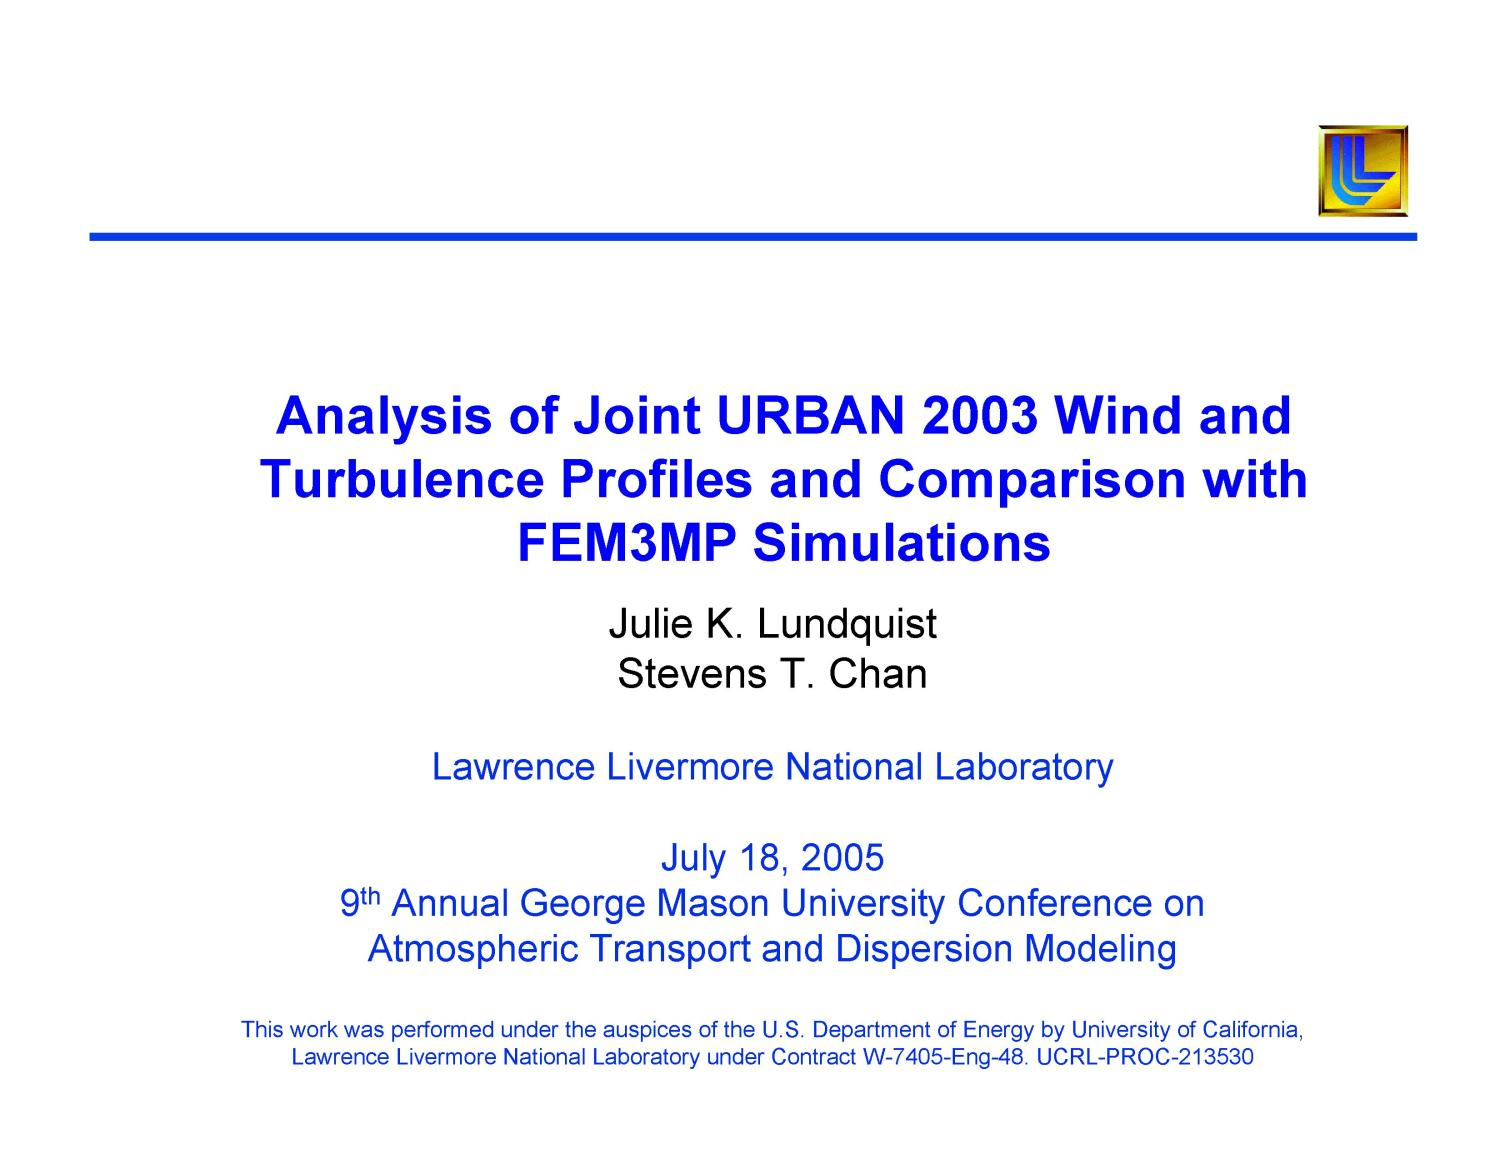 Analysis of Joint URBAN 2003 Wind and Turbulence Profiles and Comparison with FEM3MP Simulations                                                                                                      [Sequence #]: 3 of 18